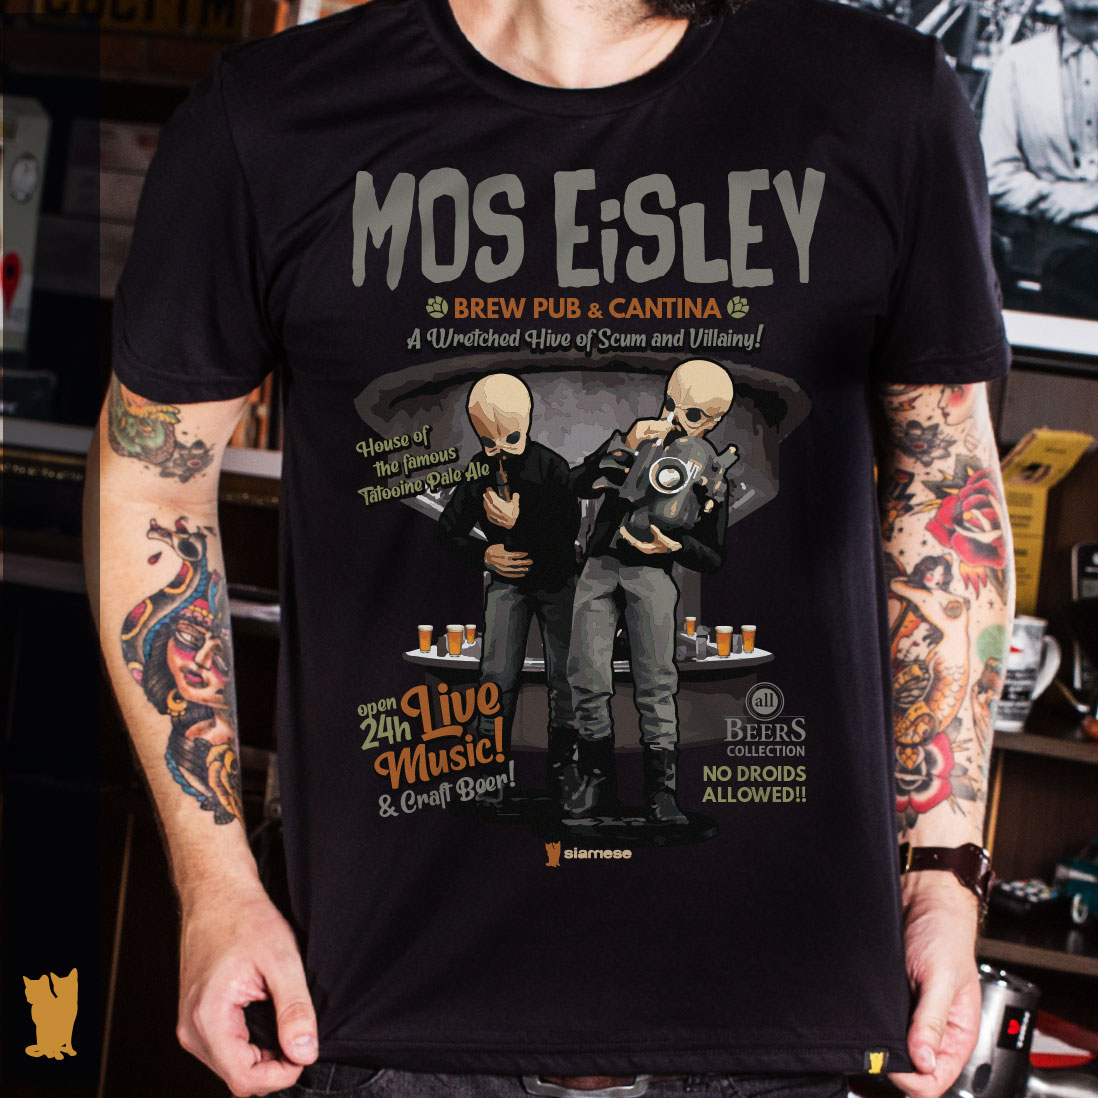 CAMISETA ALL BEERS - MOS EISLEY BREW PUB